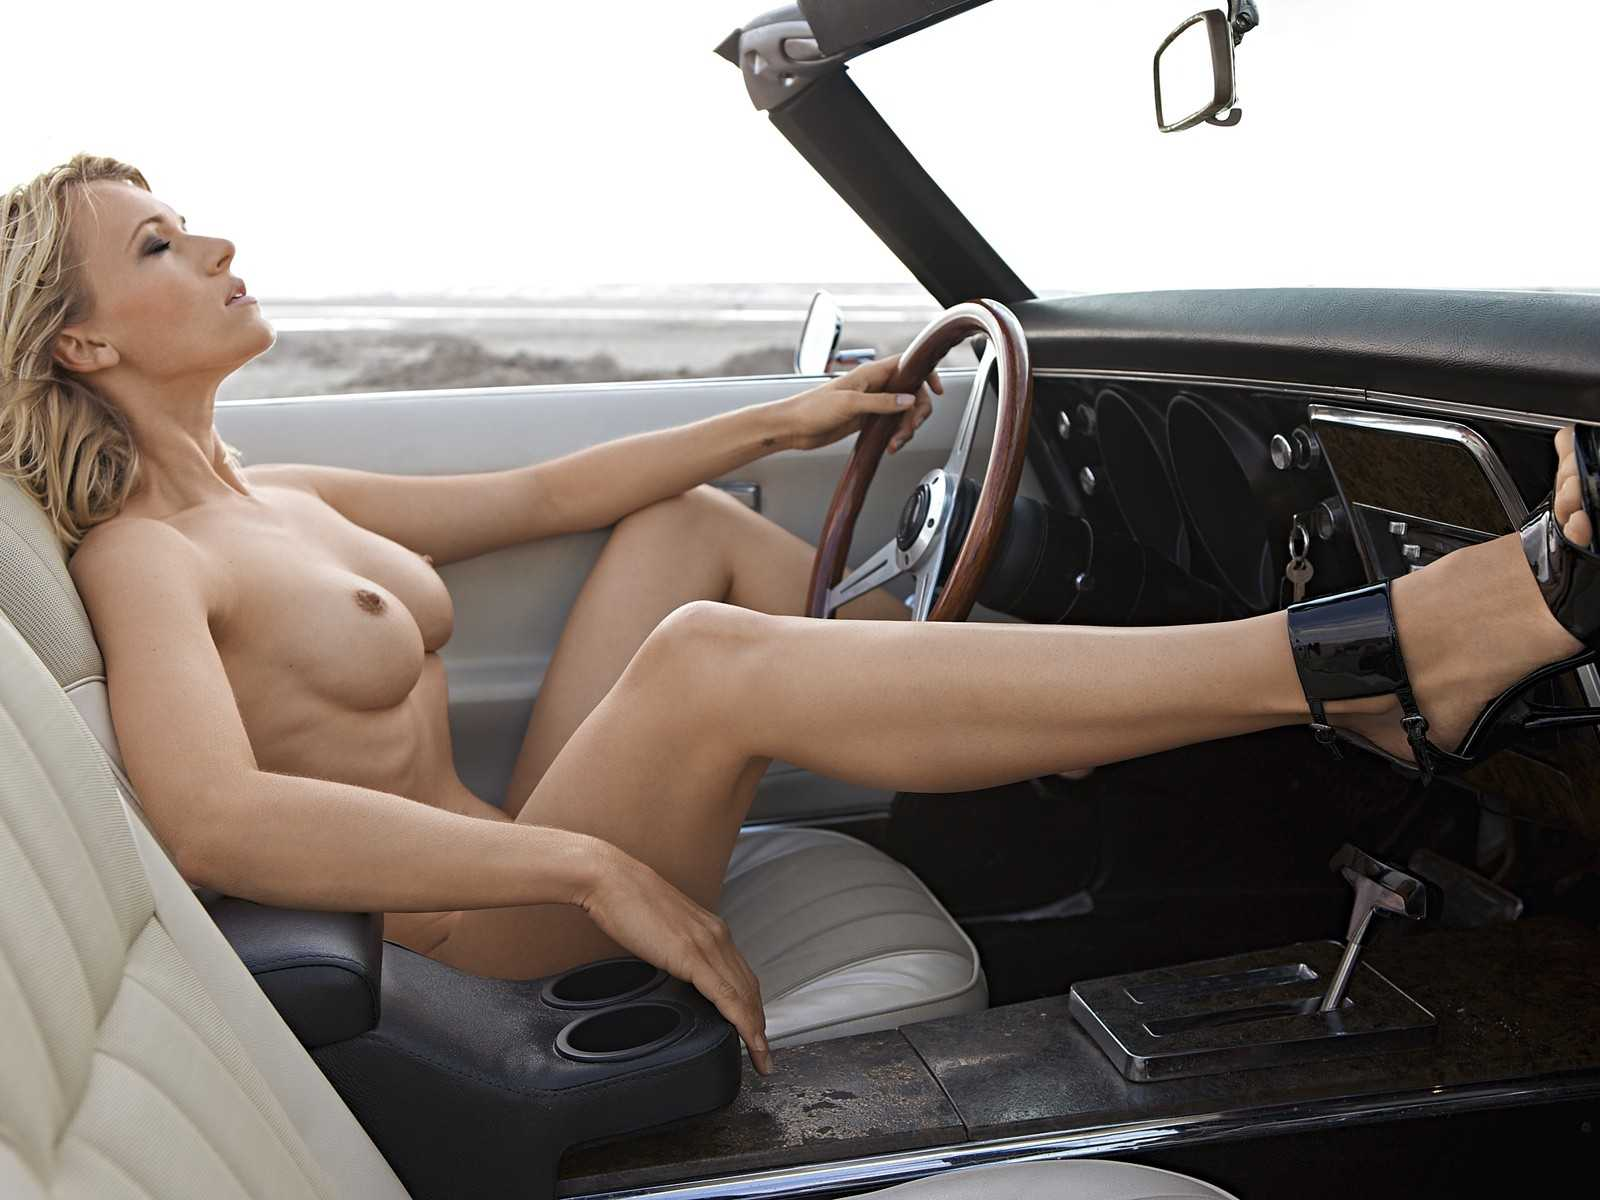 Girl driving topless in convertible — photo 12